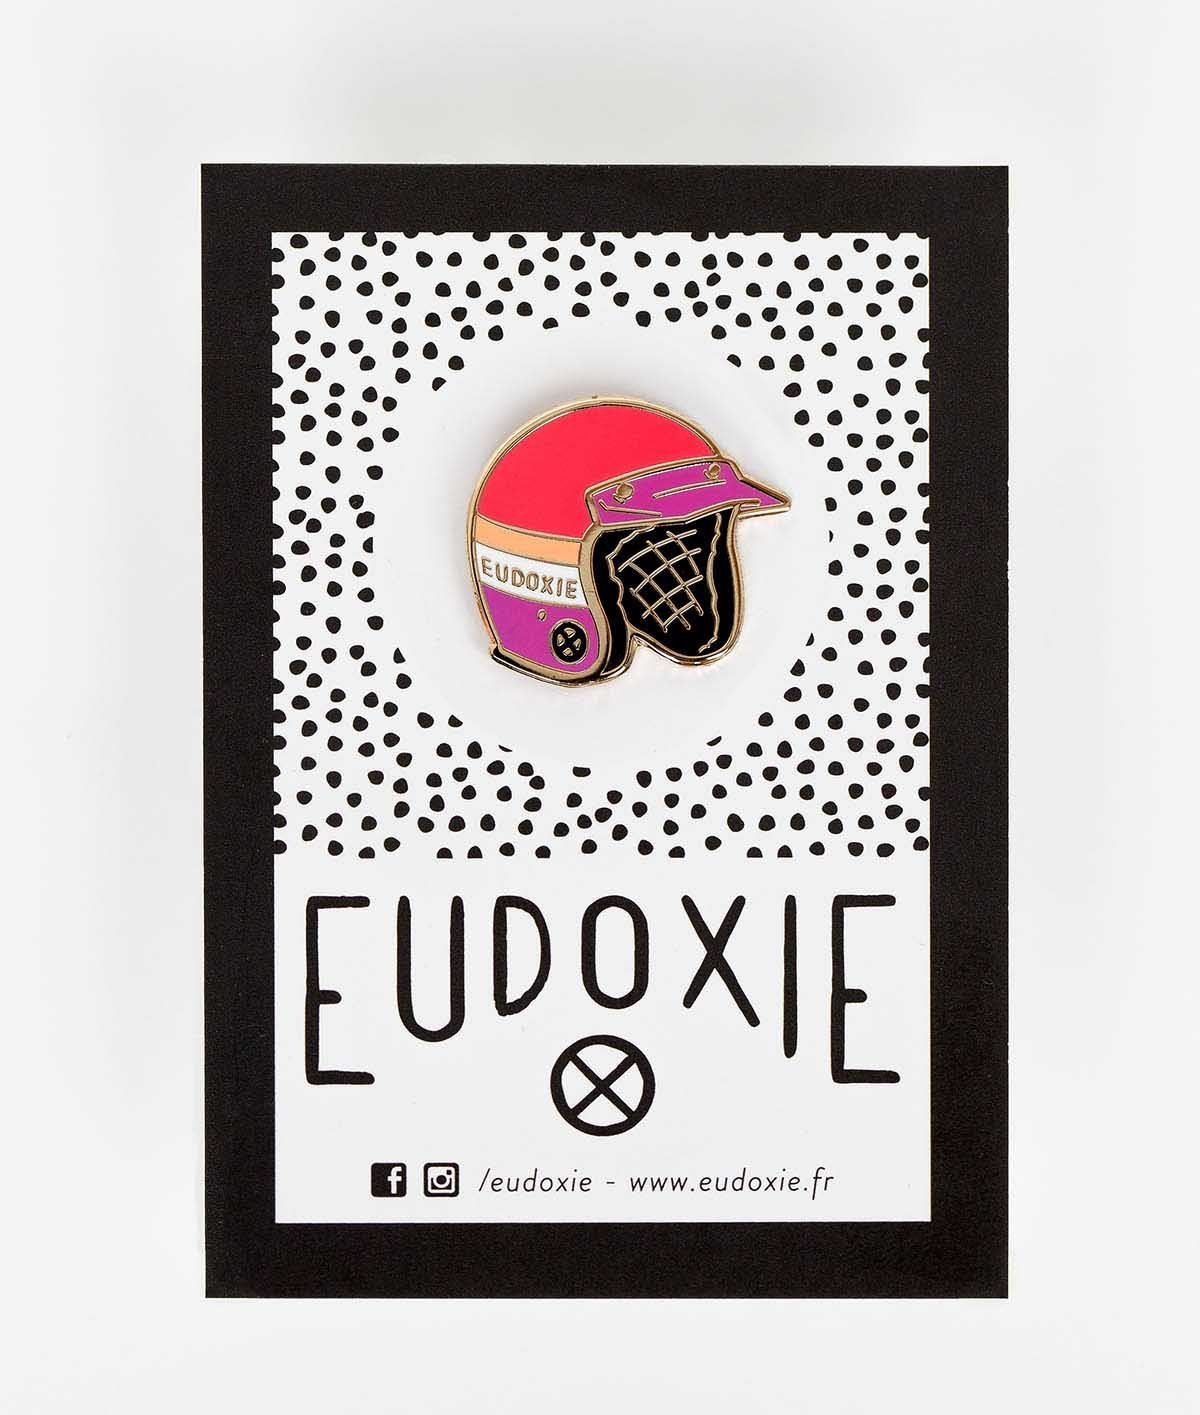 Eudoxie - Eudoxie Jet Pin - Accessories - Salt Flats Clothing